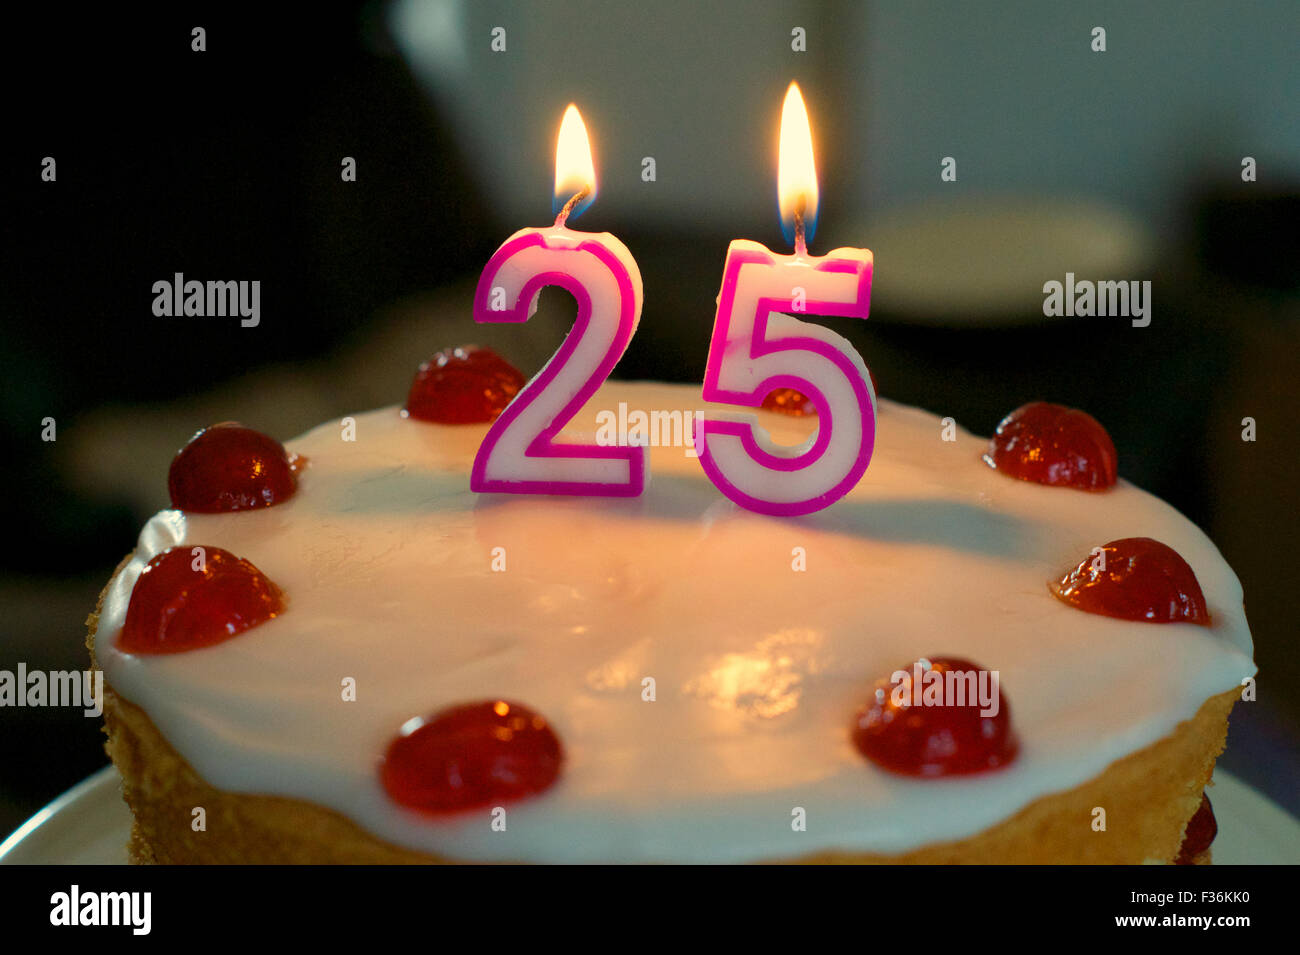 Astounding 25Th Birthday Cake With Cherries And 2 5 Candles On Top Stock Funny Birthday Cards Online Alyptdamsfinfo